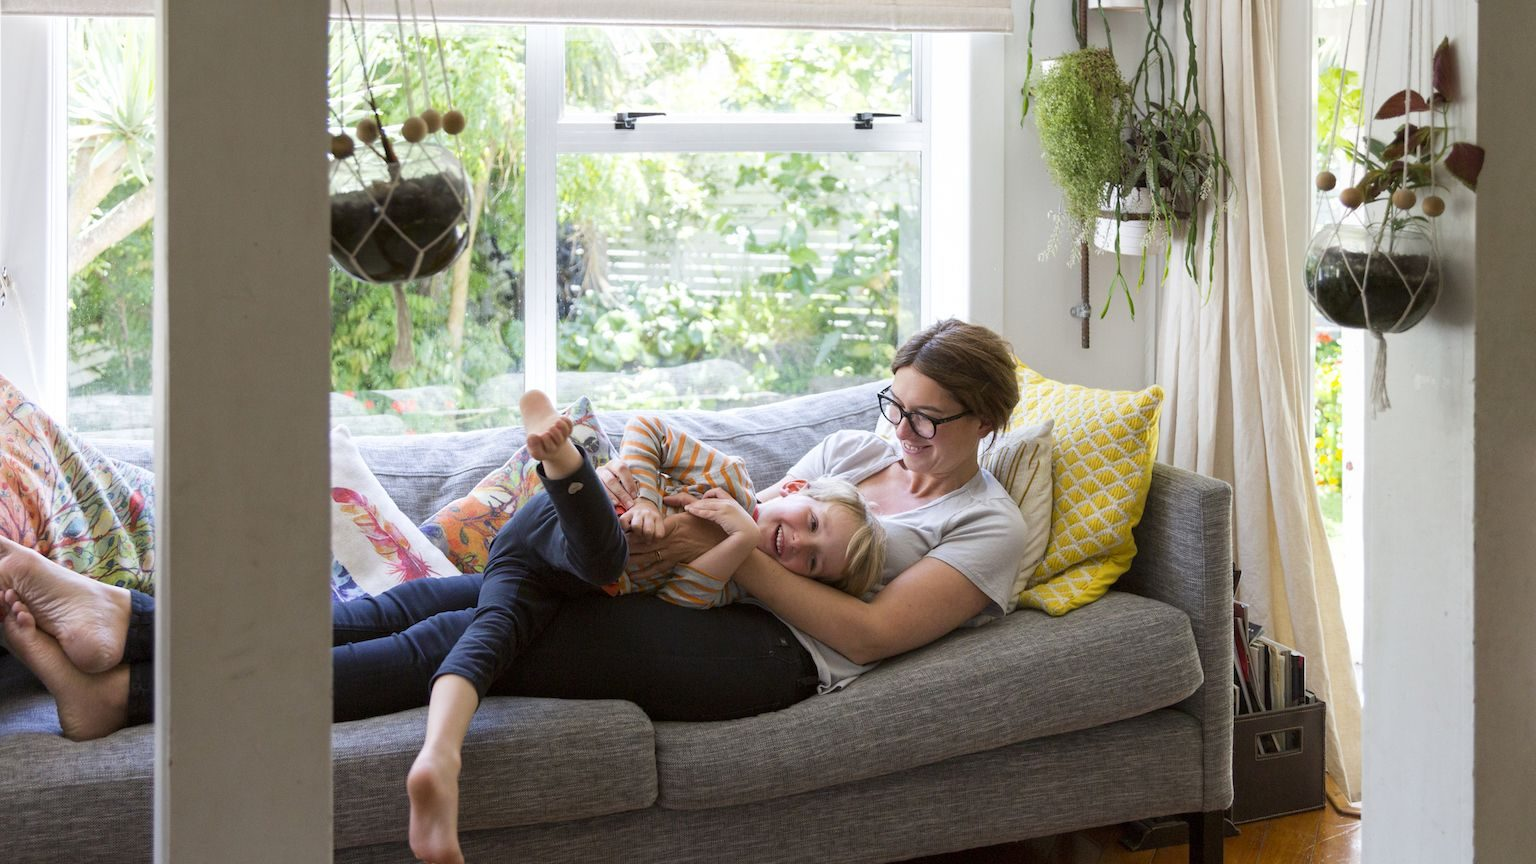 Woman and her son relaxing on the couch together